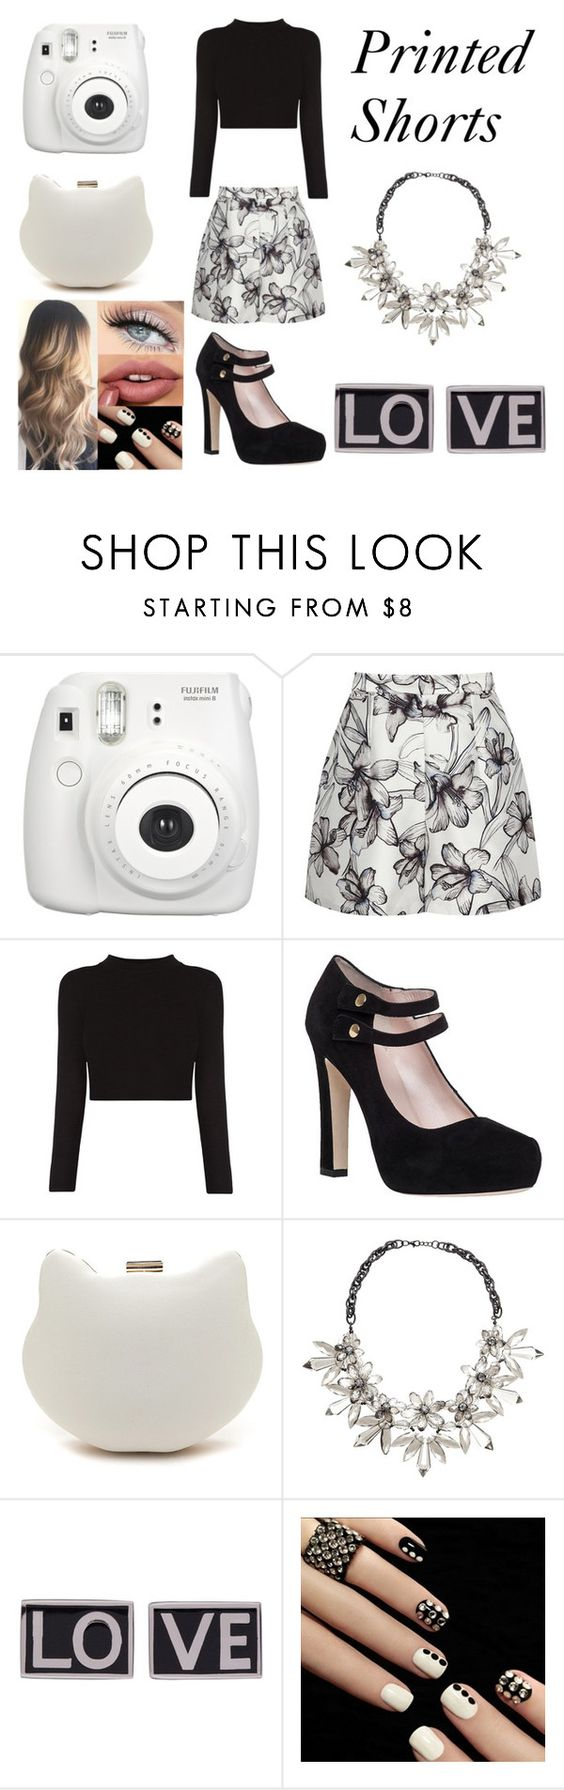 """""""Printed Shorts"""" by xcoordinatingfashionx ❤ liked on Polyvore featuring Fujifilm, Reiss, Kate Spade, John Lewis and Givenchy"""